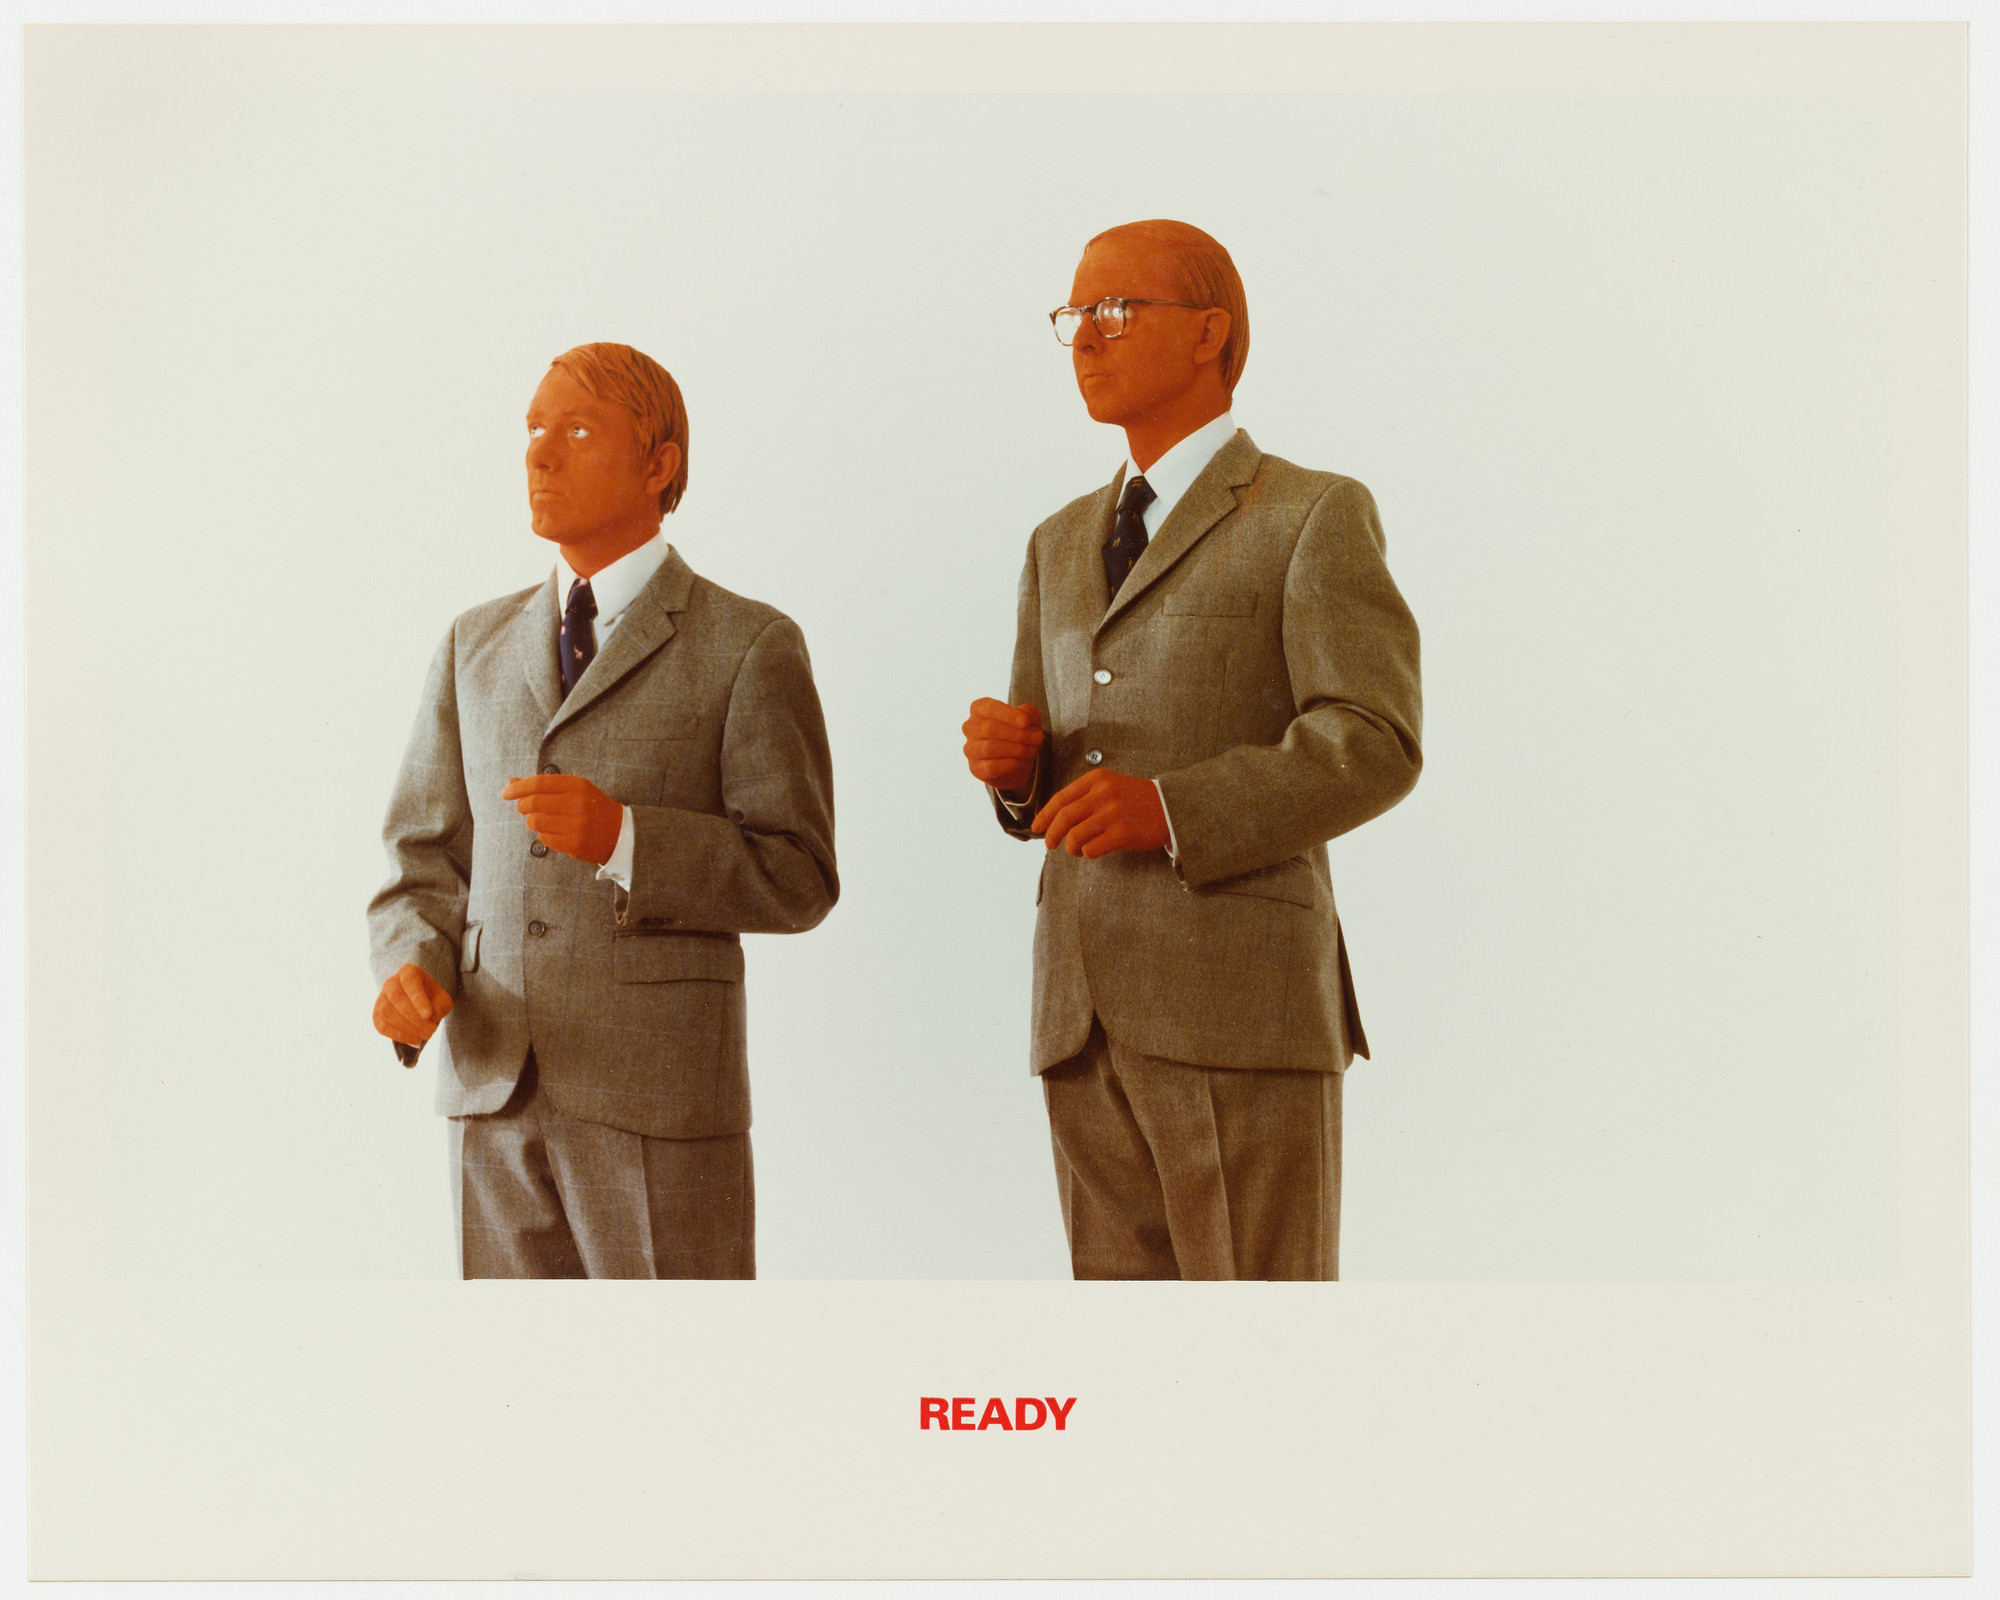 Gilbert & George. The Red Sculpture Album. 1975. Artist's book of 11 chromogenic color prints with text, 15 3⁄16 x 19 7/8″ (38.5 x 50.5 cm). Art & Project/Depot VBVR Gift. © 2015 Gilbert & George